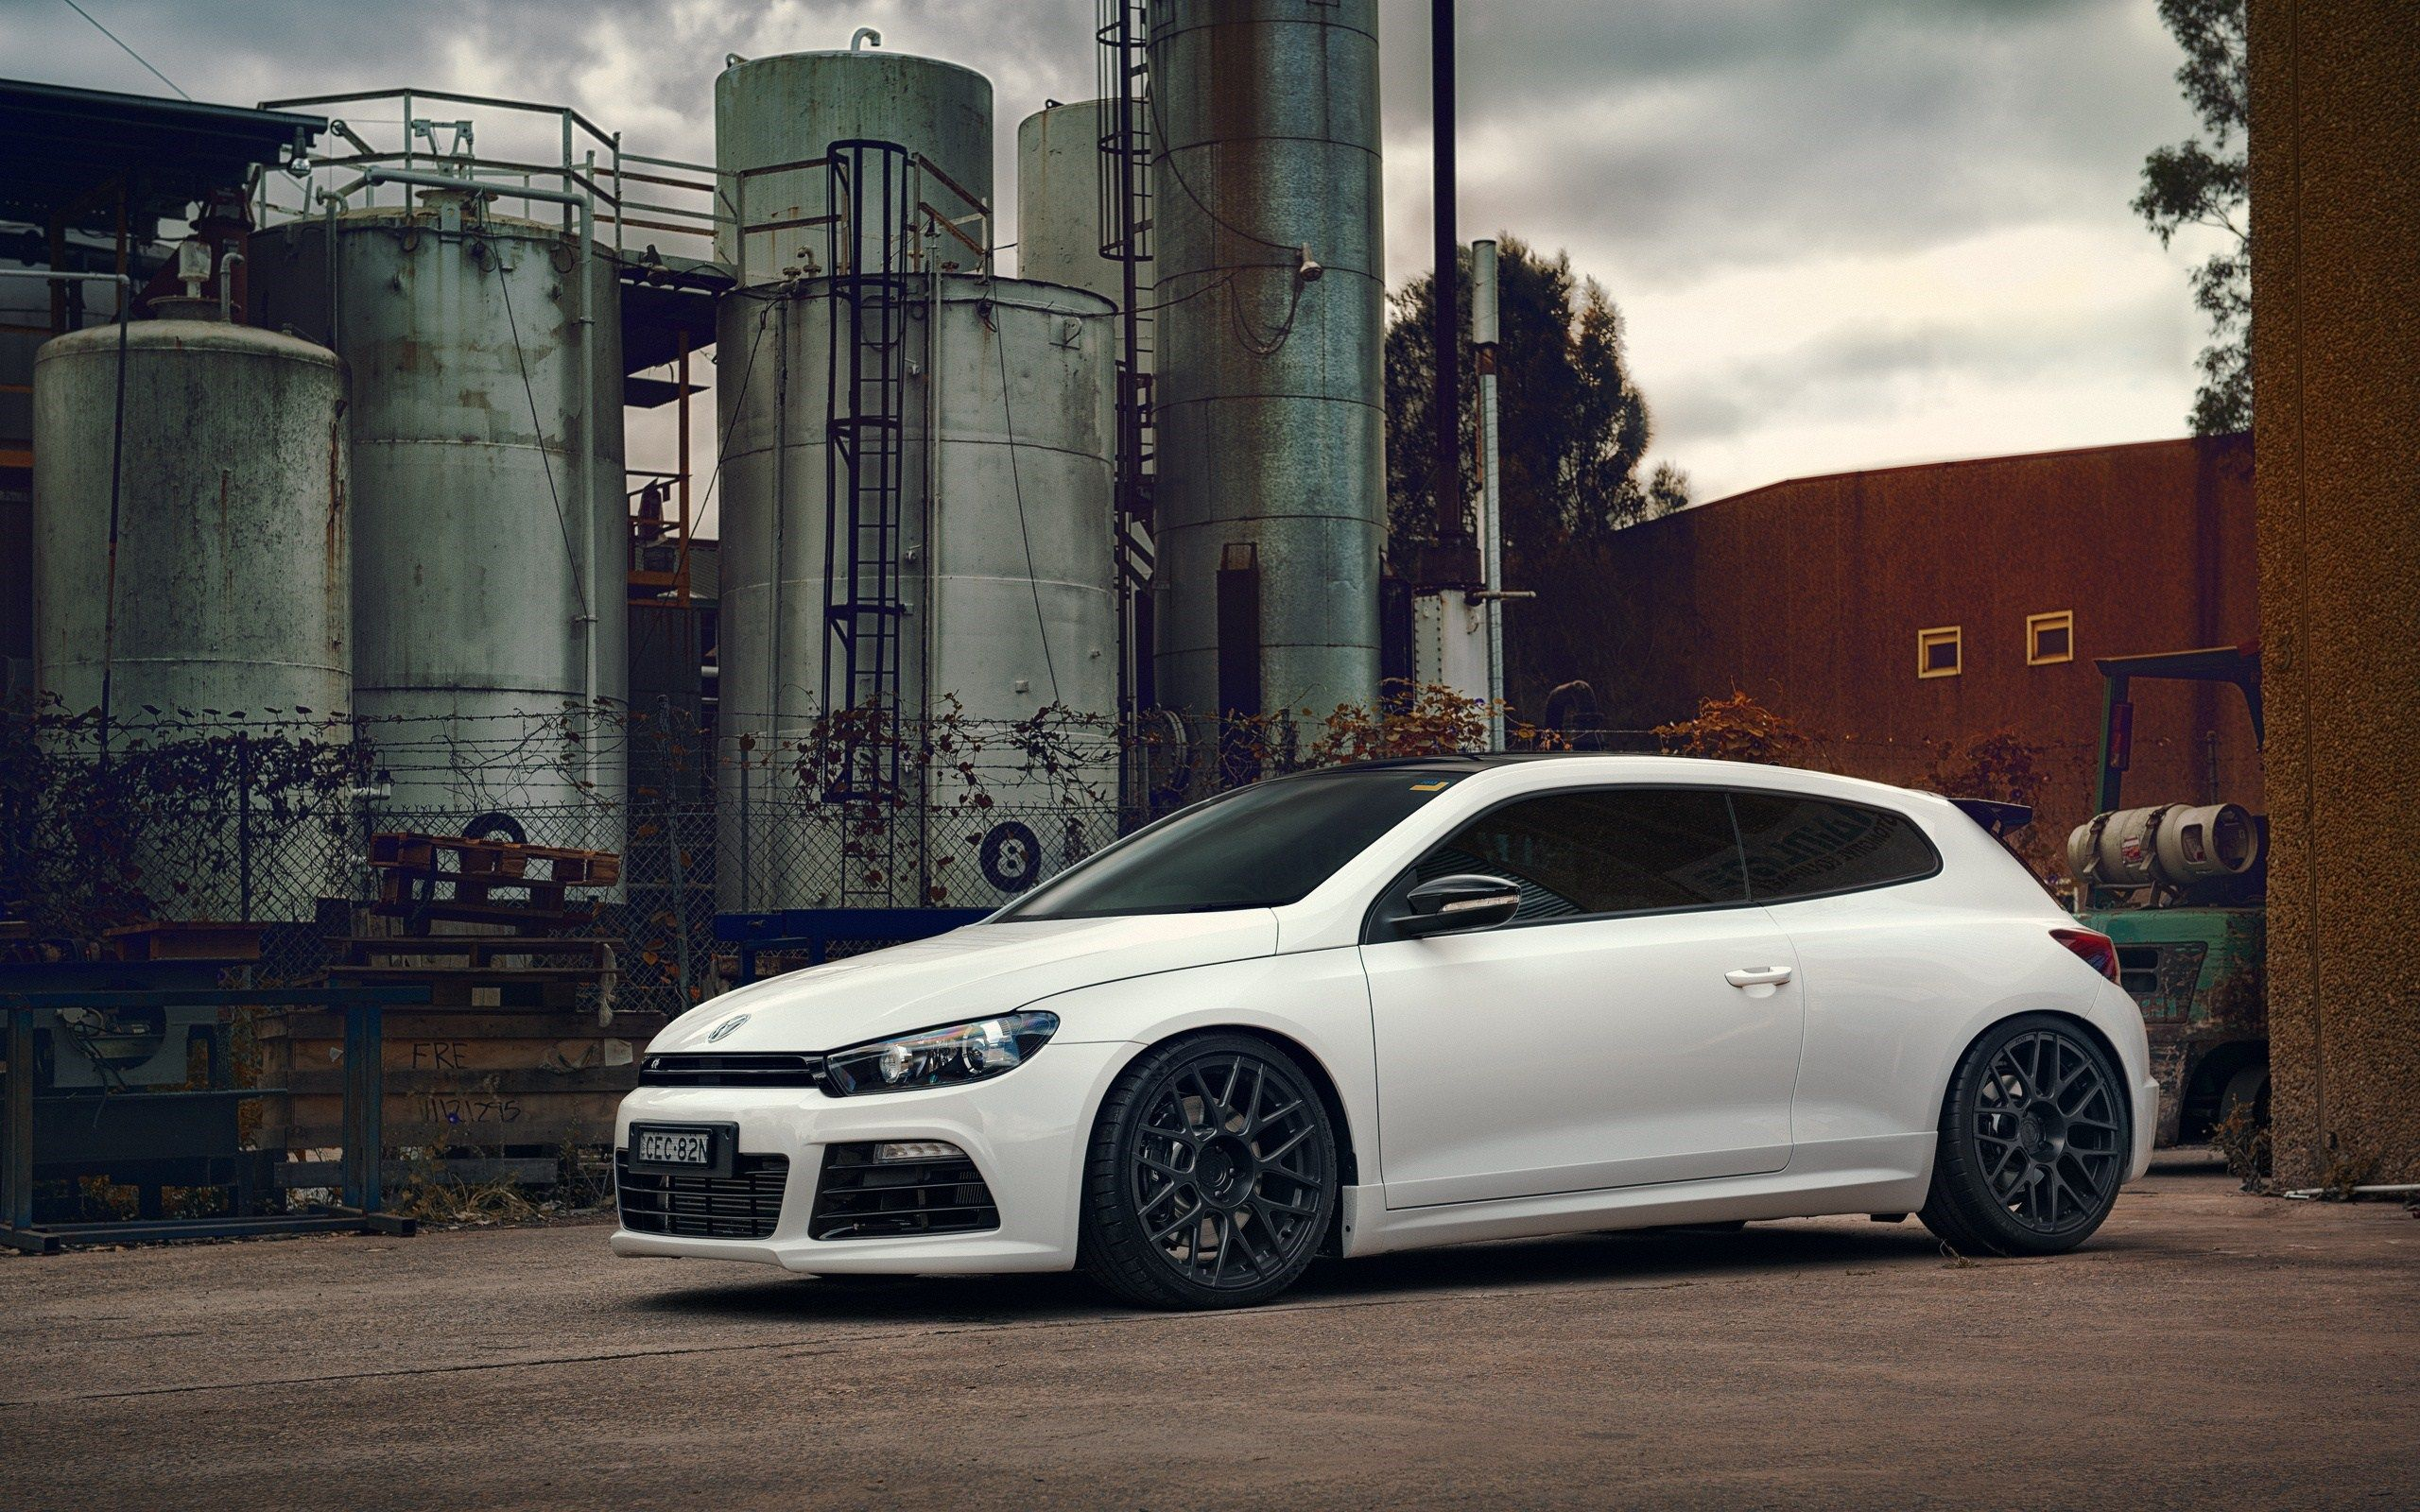 Volkswagen Scirocco R Wallpaper Photos Volkswagen And Photography